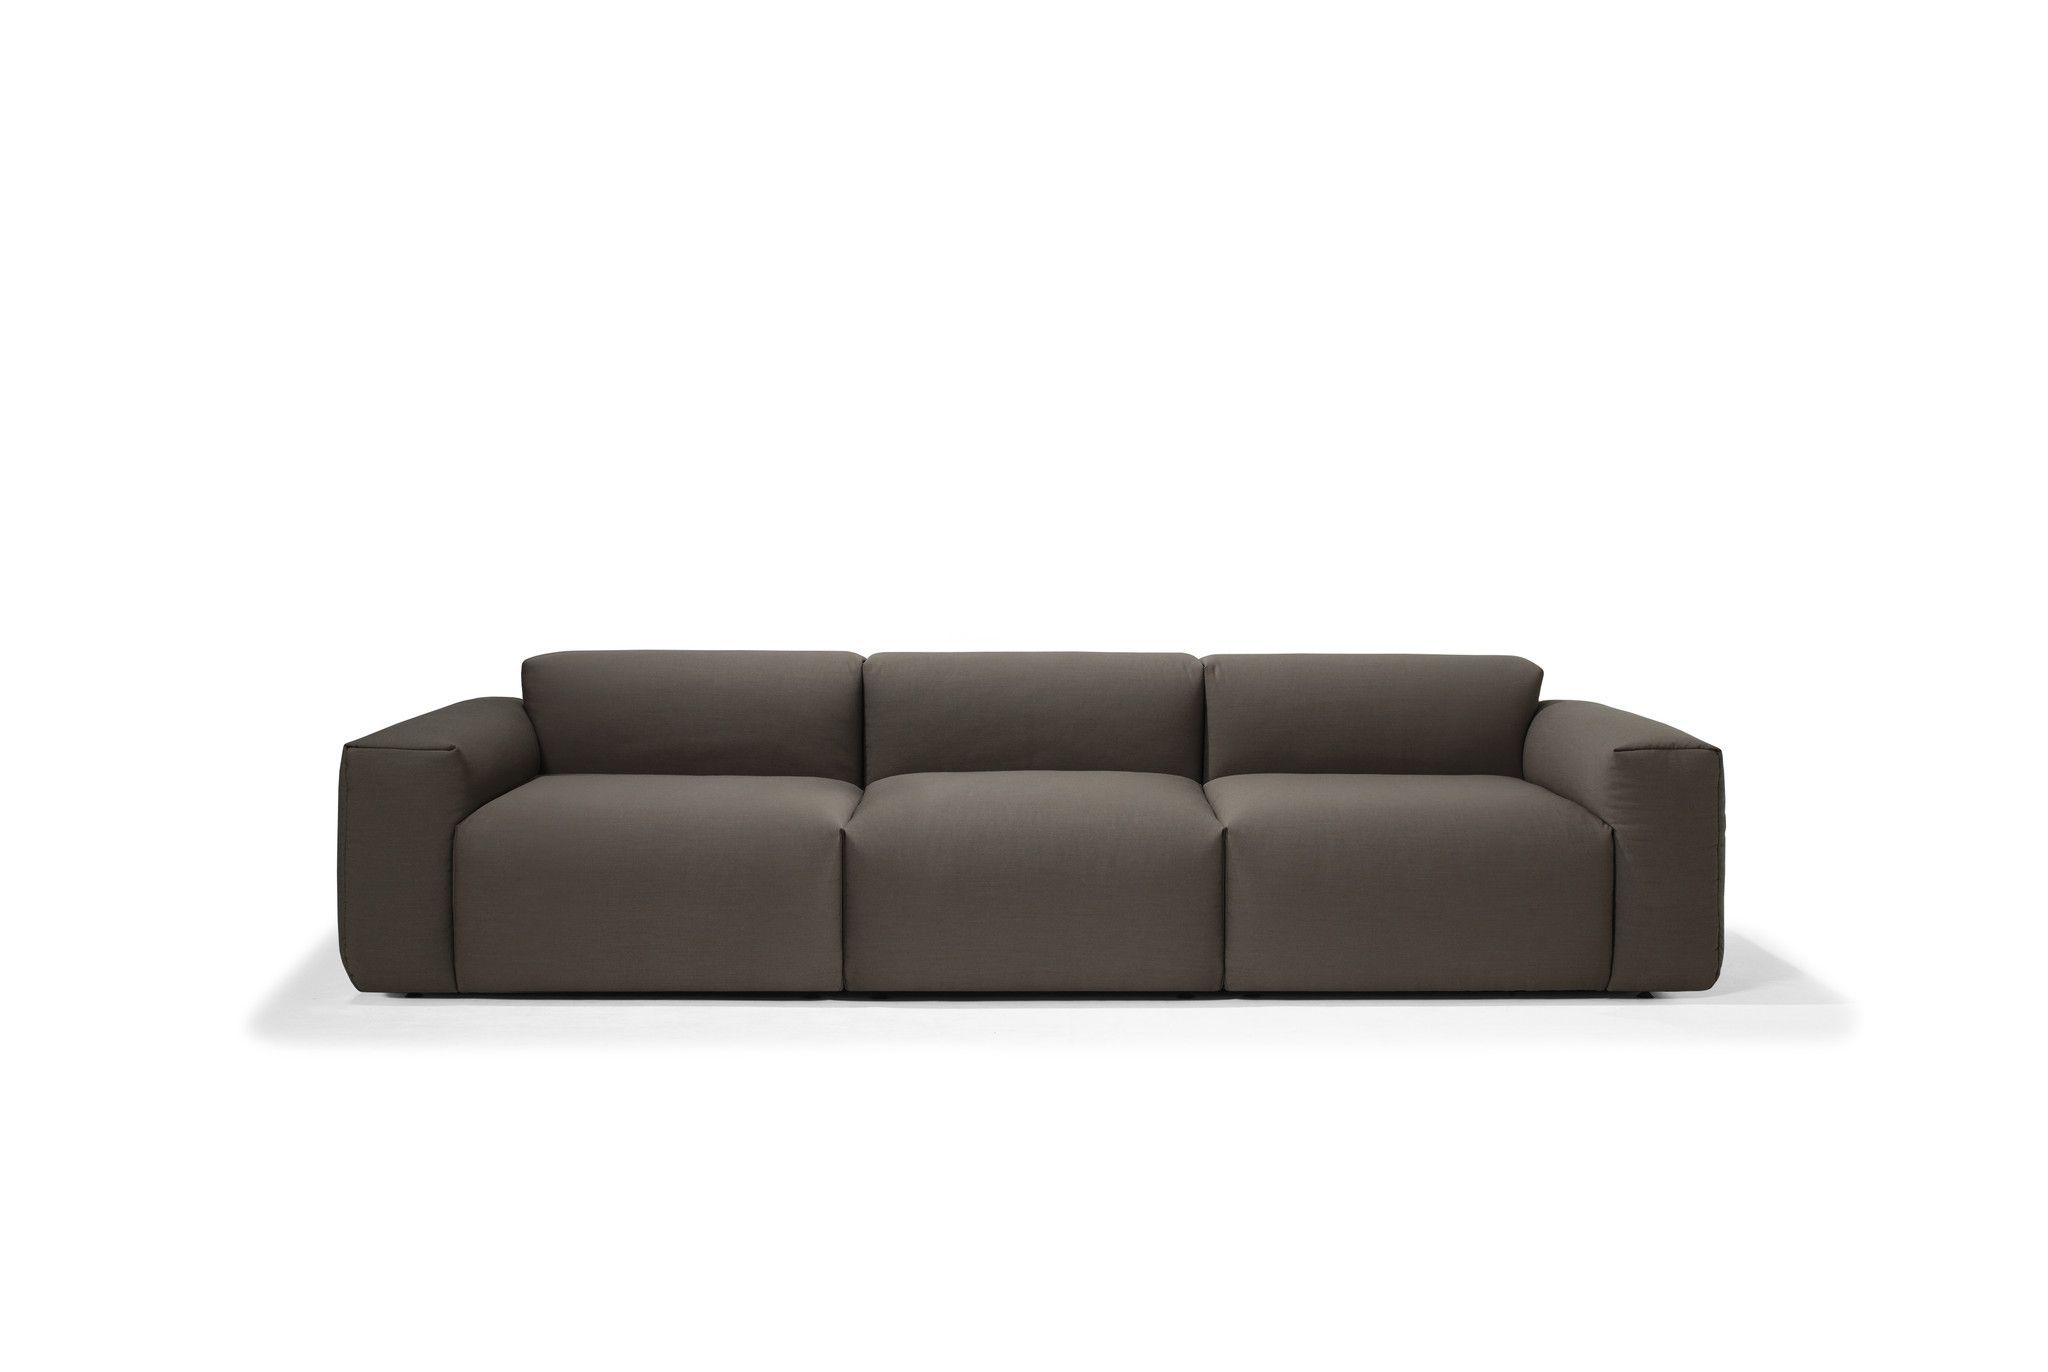 Loose Is A Modern Lounge Sofa Soft And Feminine But Also With An Appealing Masculine Touch No Redundancy Only